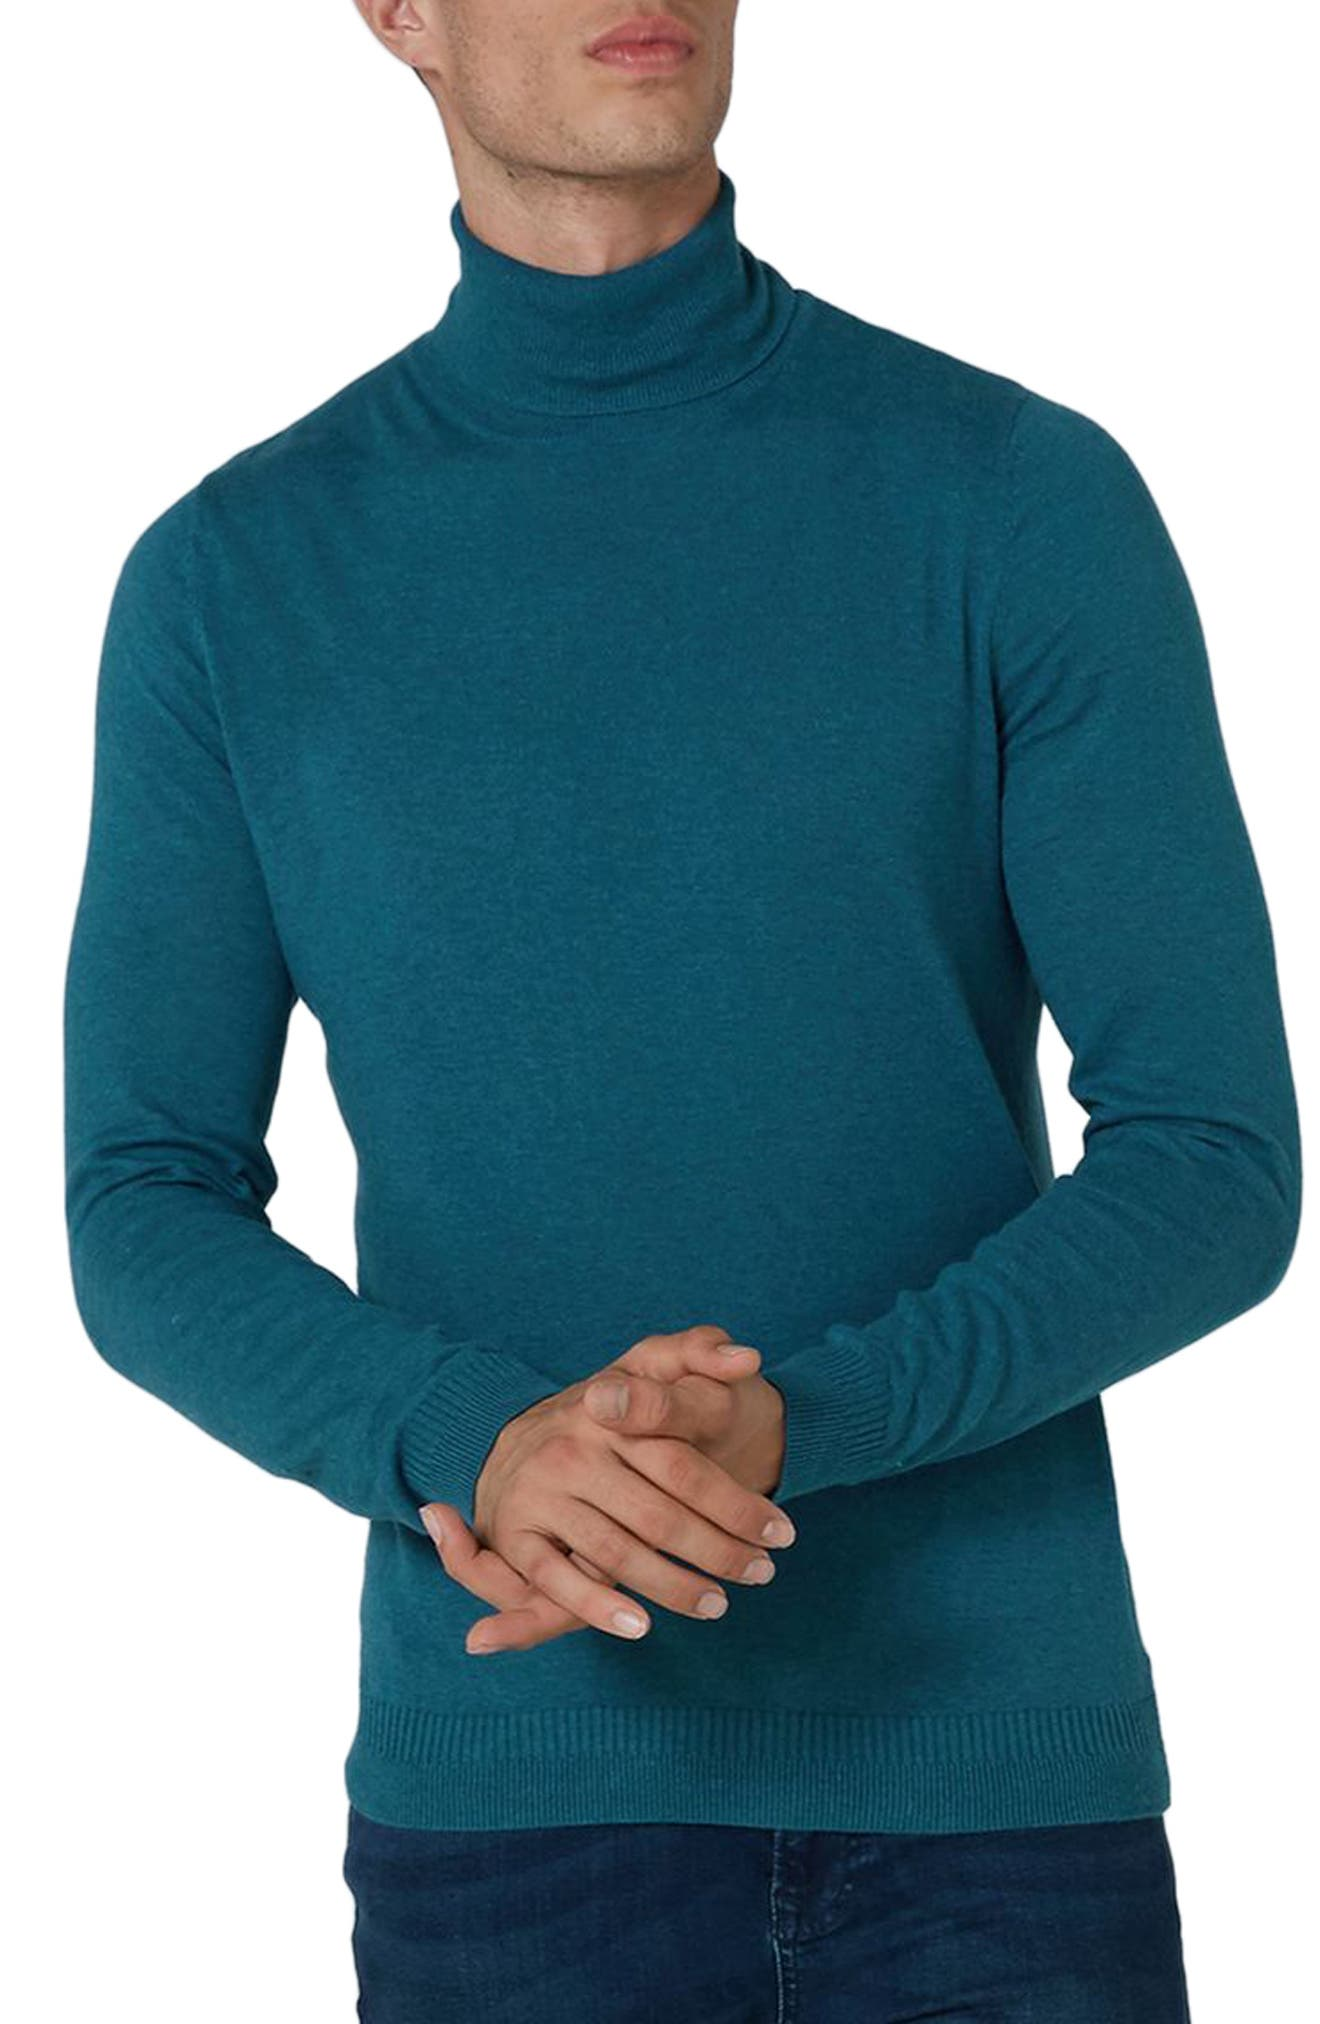 Cotton Turtleneck Sweater,                         Main,                         color, Blue